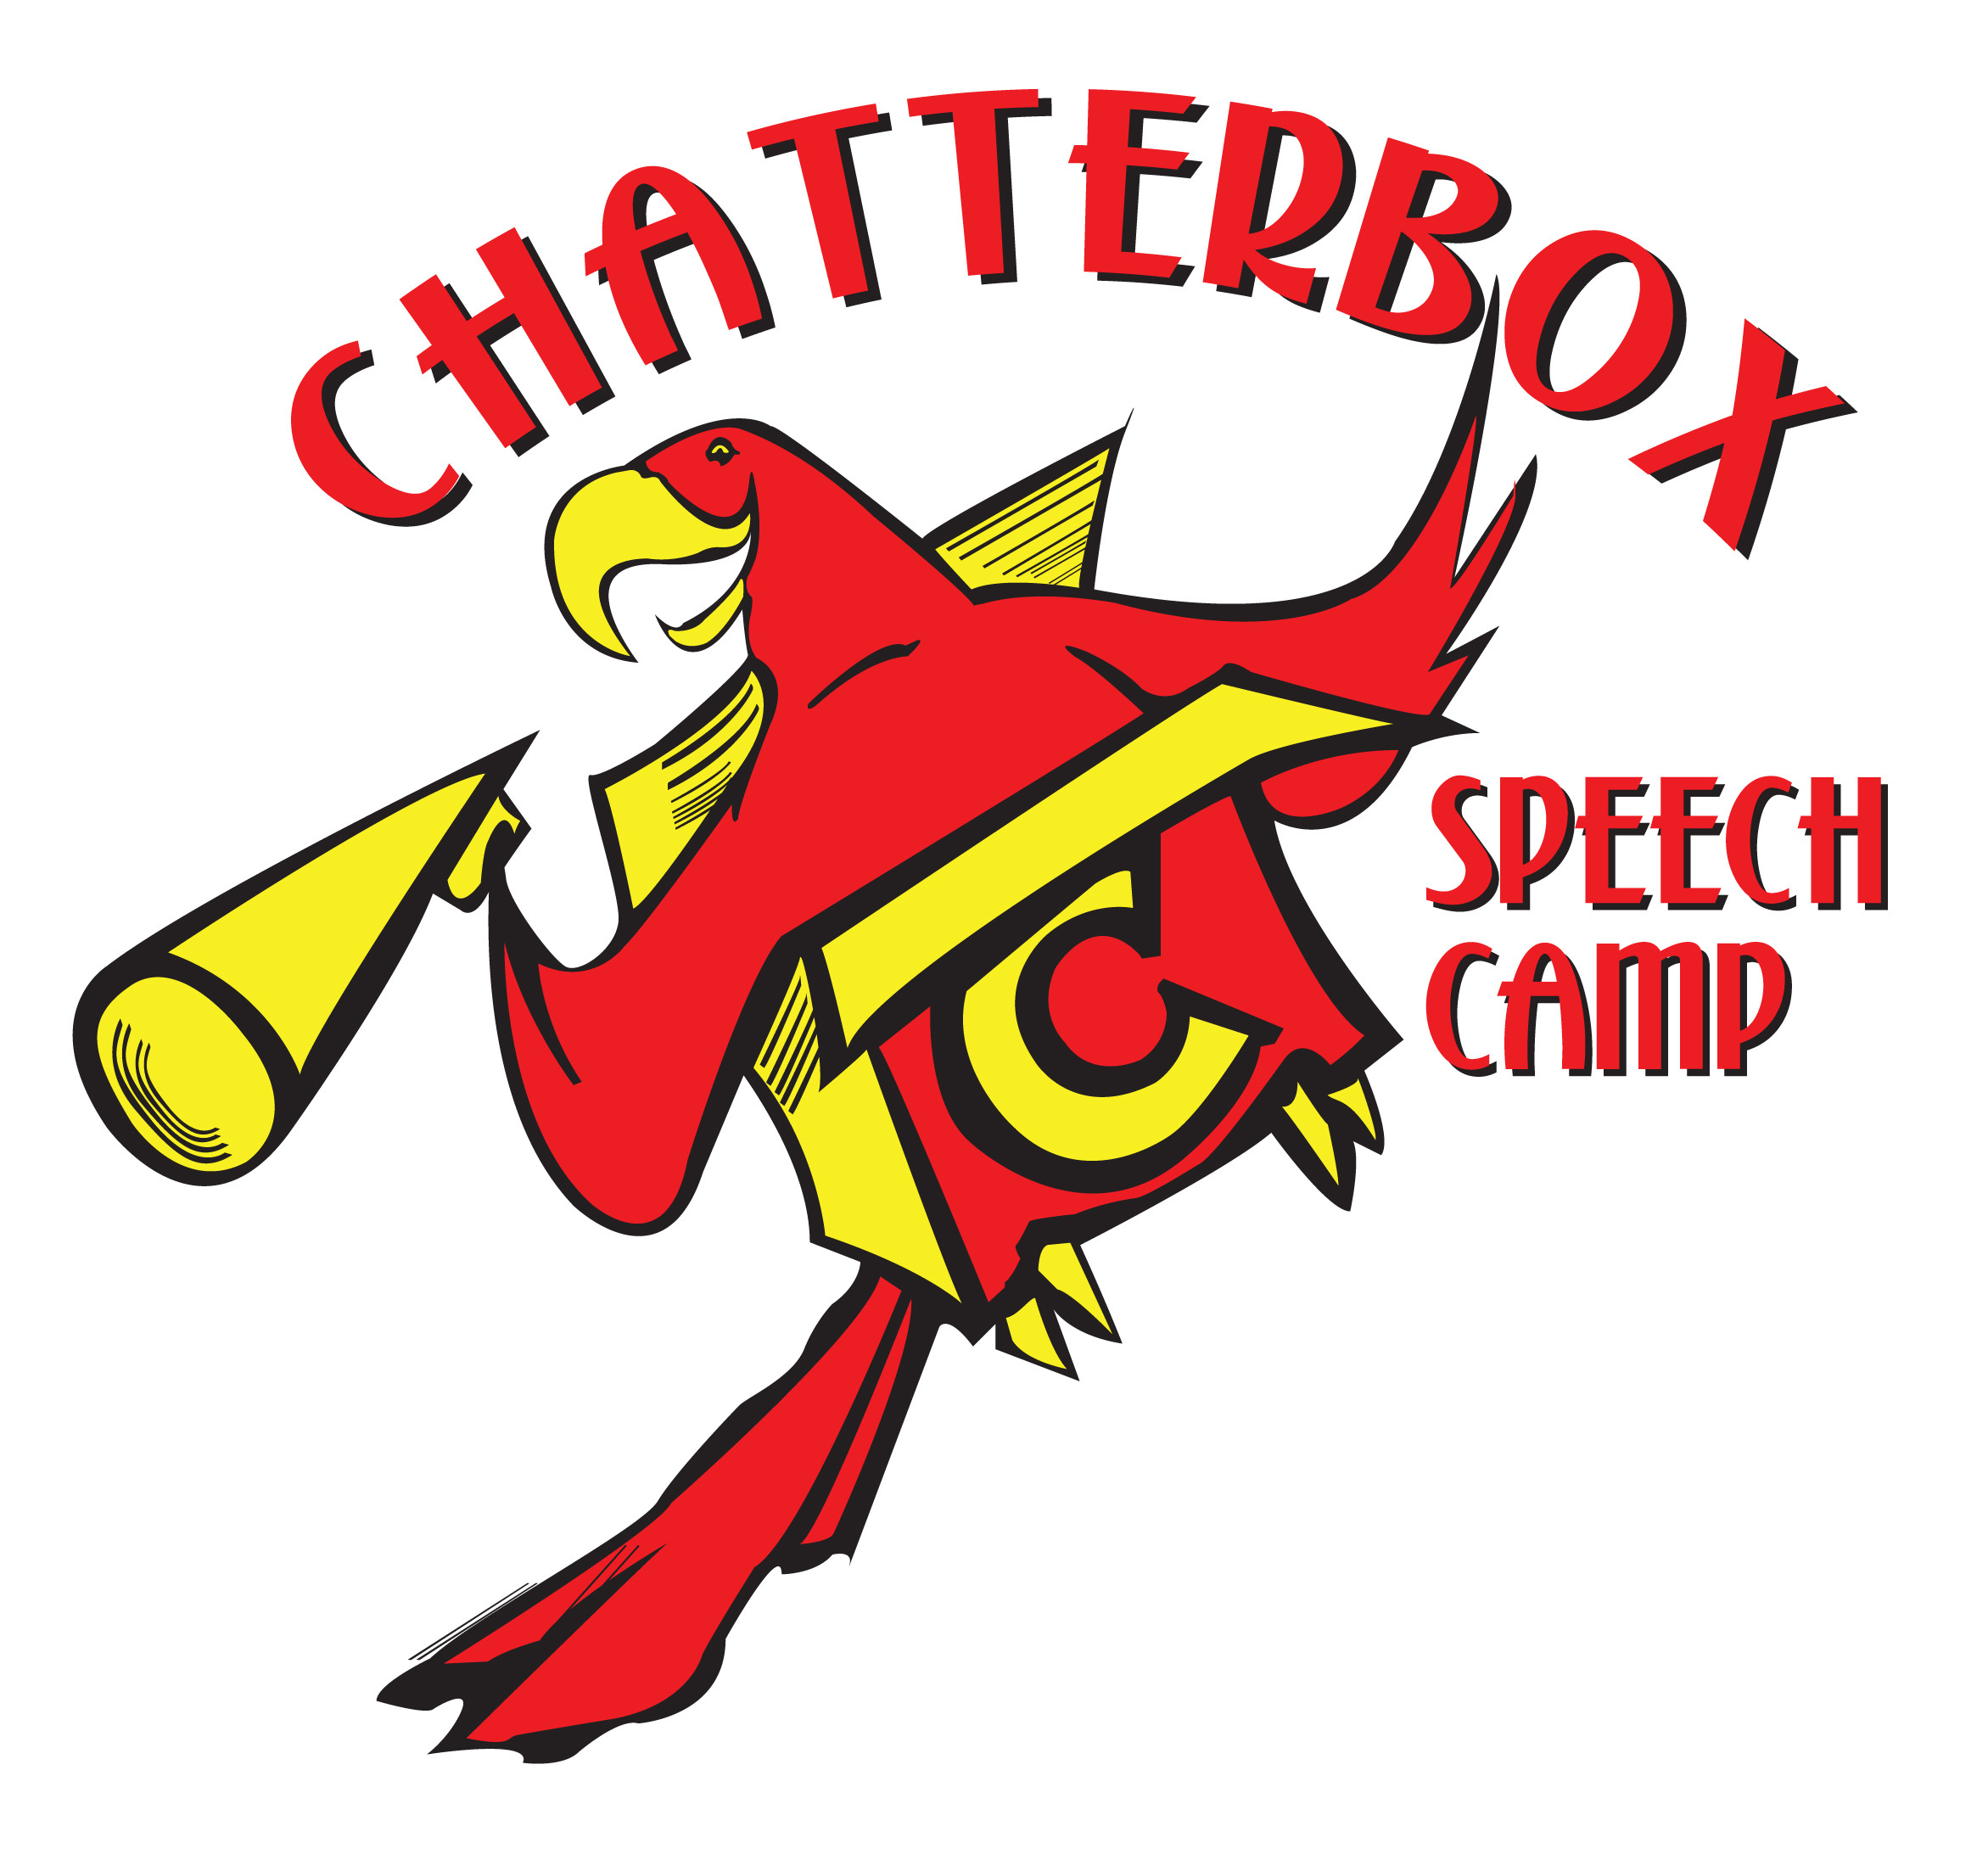 ChatterboxLogo